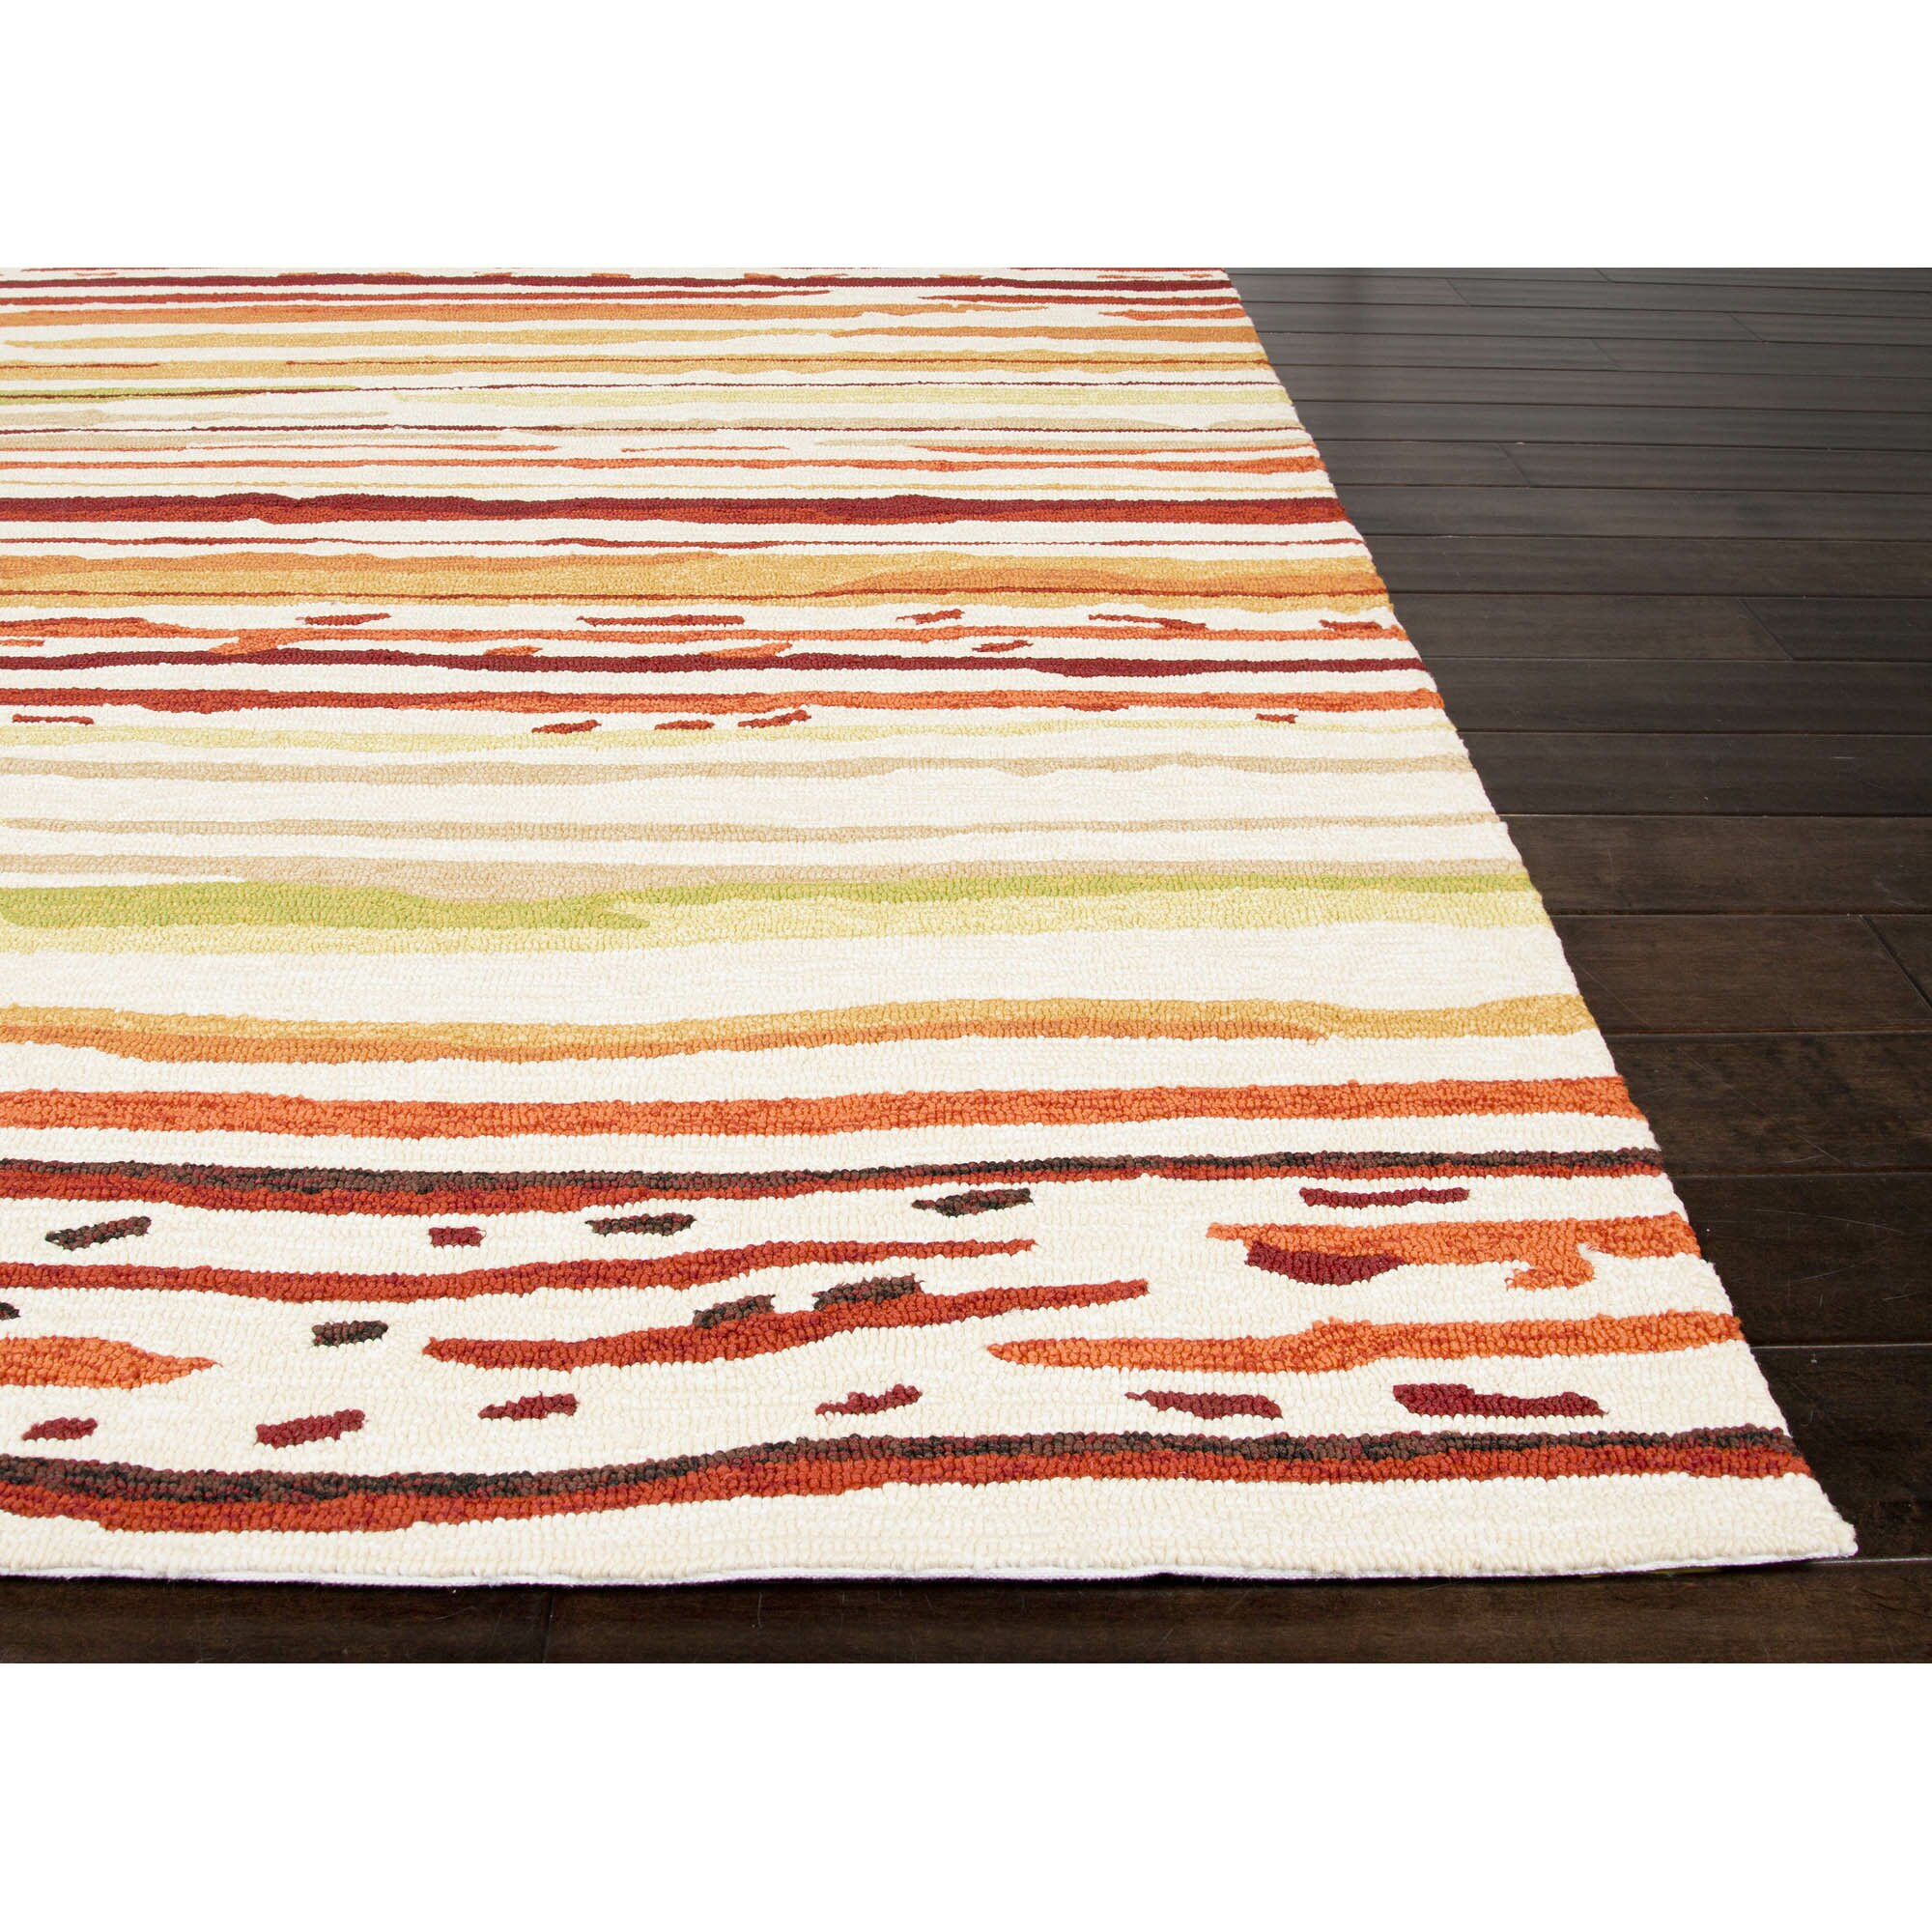 Jaipurliving colours red orange striped indoor outdoor for Red and white striped area rug